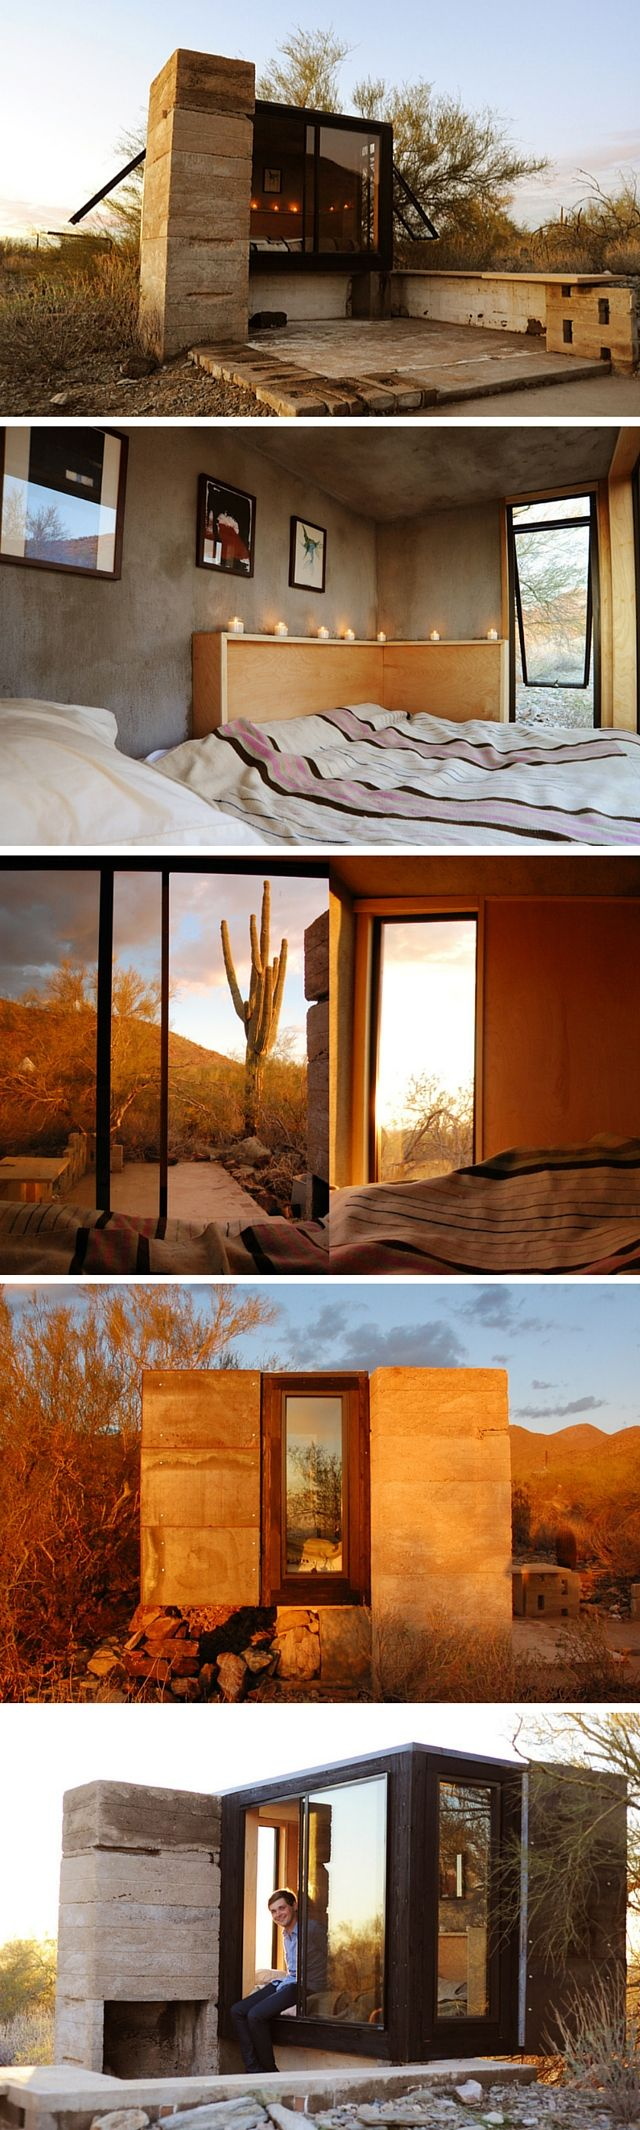 The Miner's Shelter, a 45 sq ft retreat in the Arizona desert